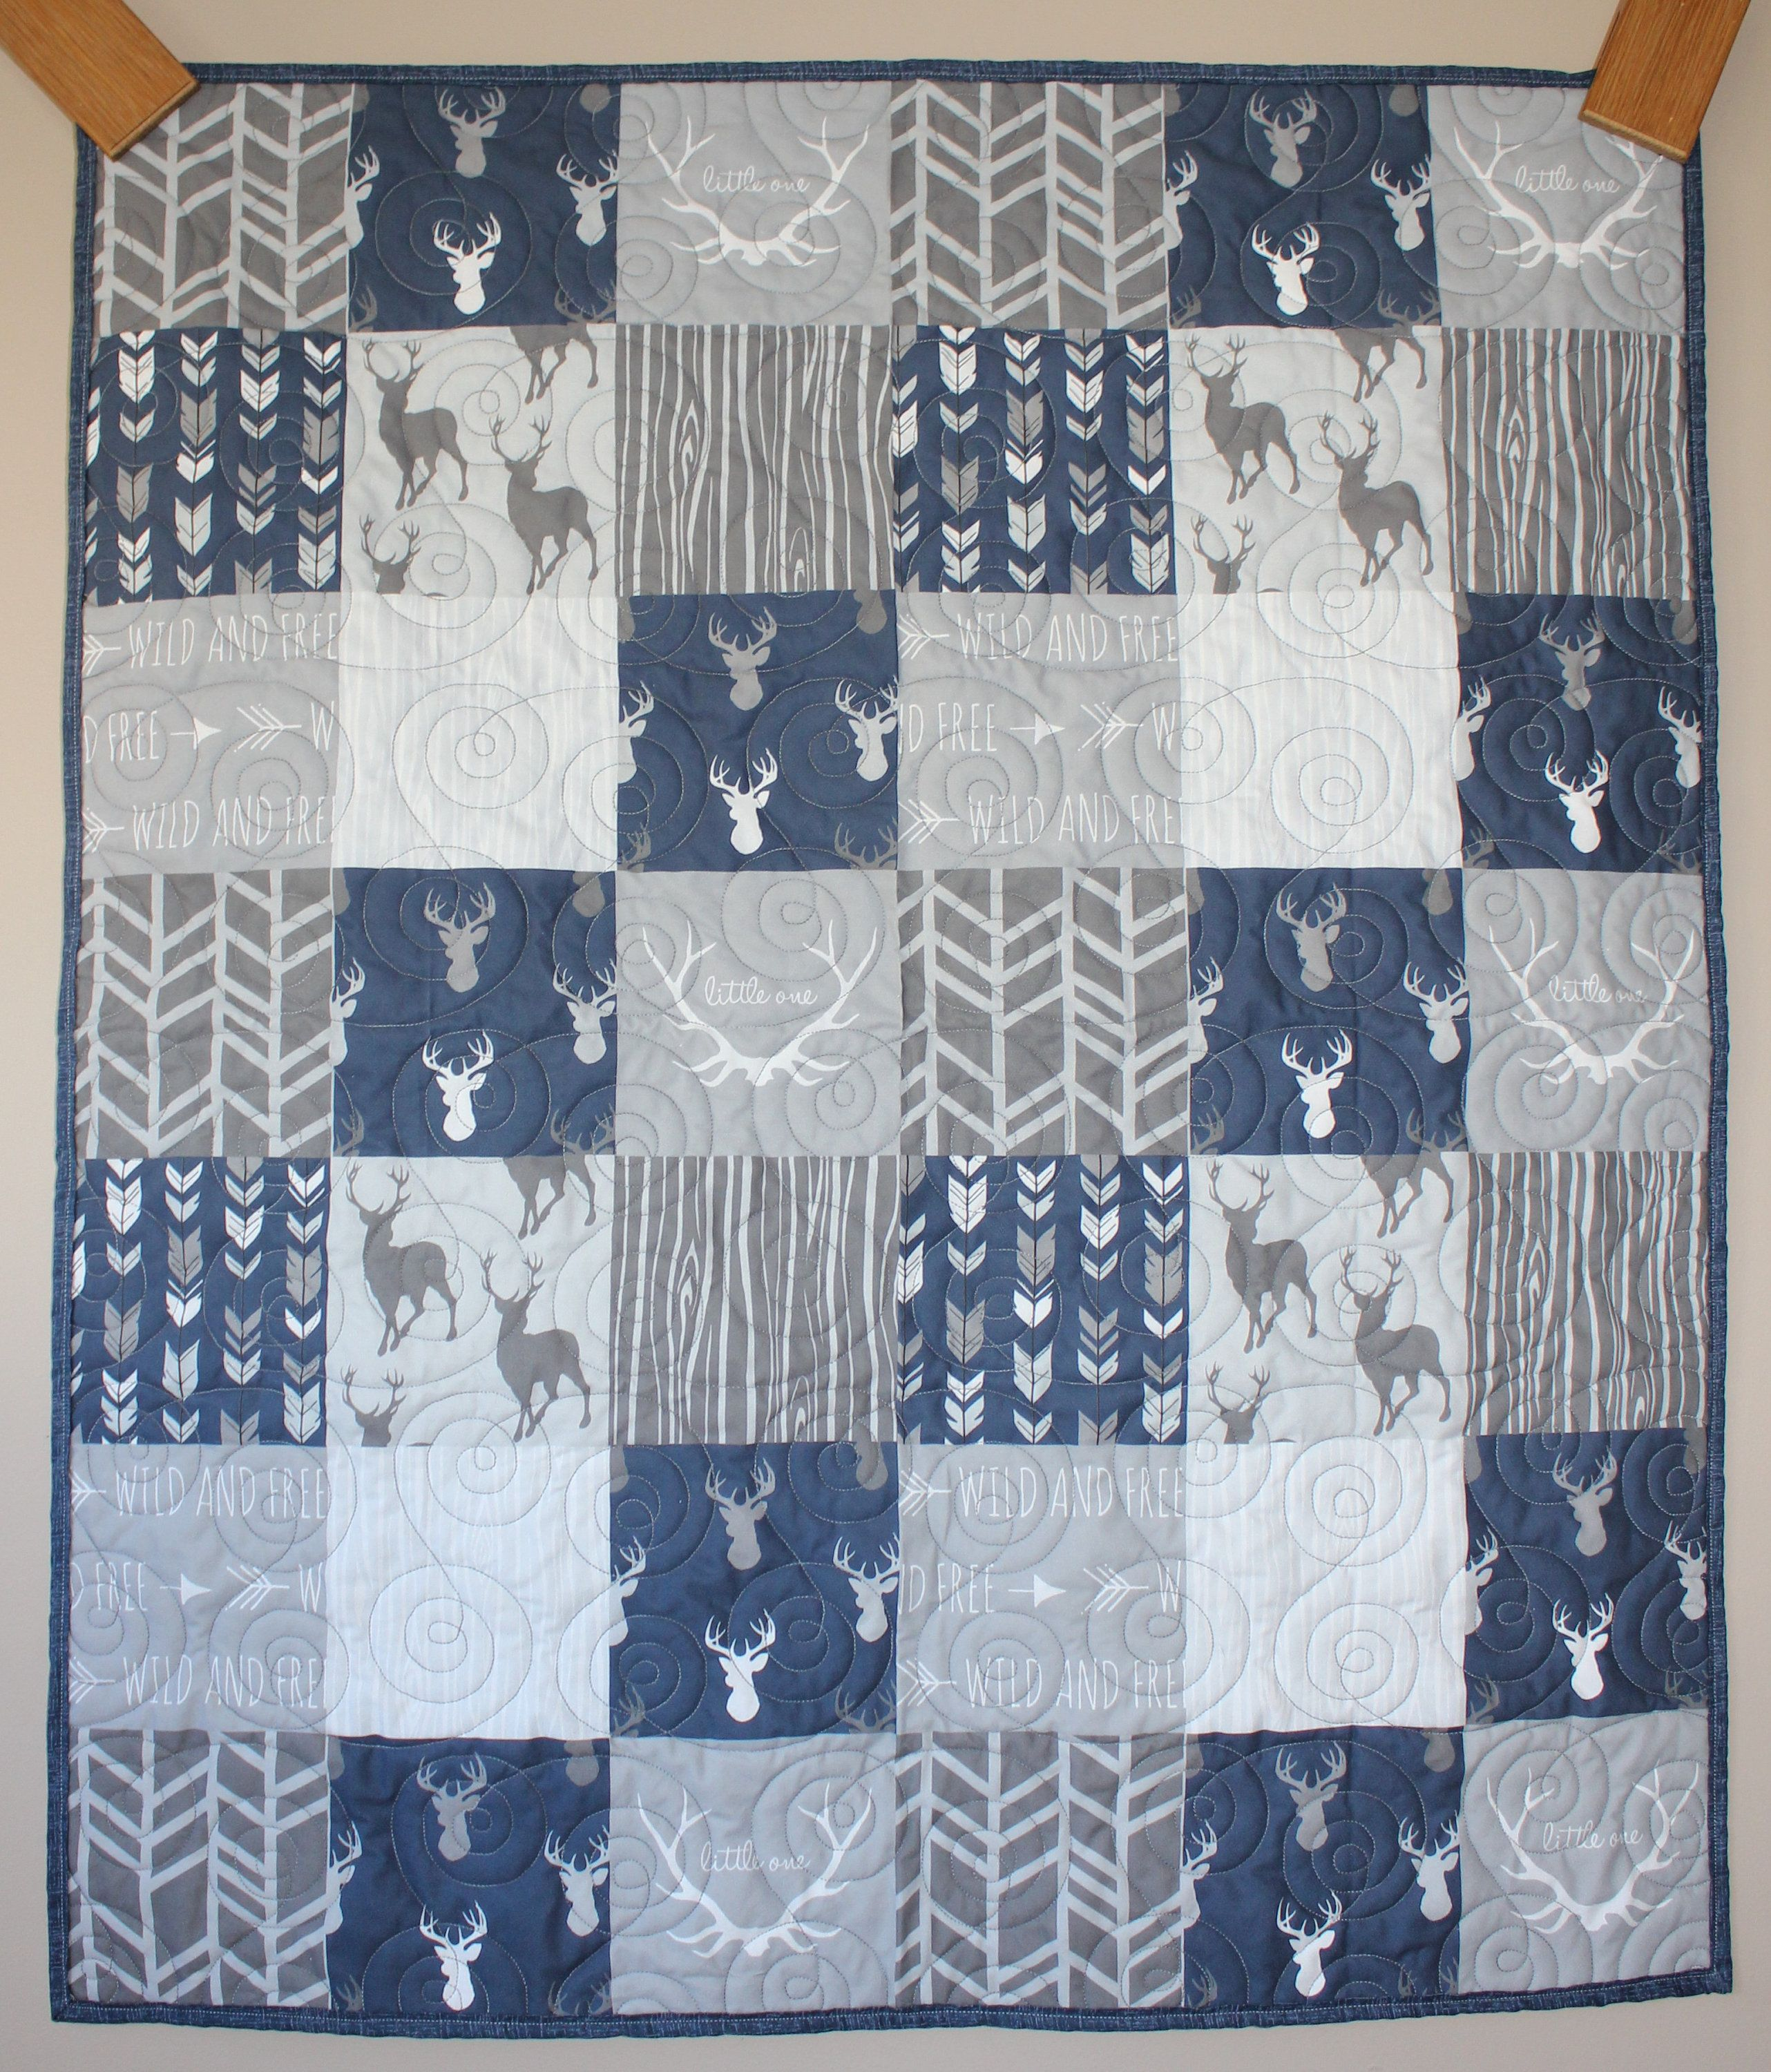 Wild And Free Blue And Gray Deer Patchwork Wholecloth Quilt Crib Lap Wall Hanging By Carsondesign On Etsy In 2020 Wall Hanging Quilts Cribs